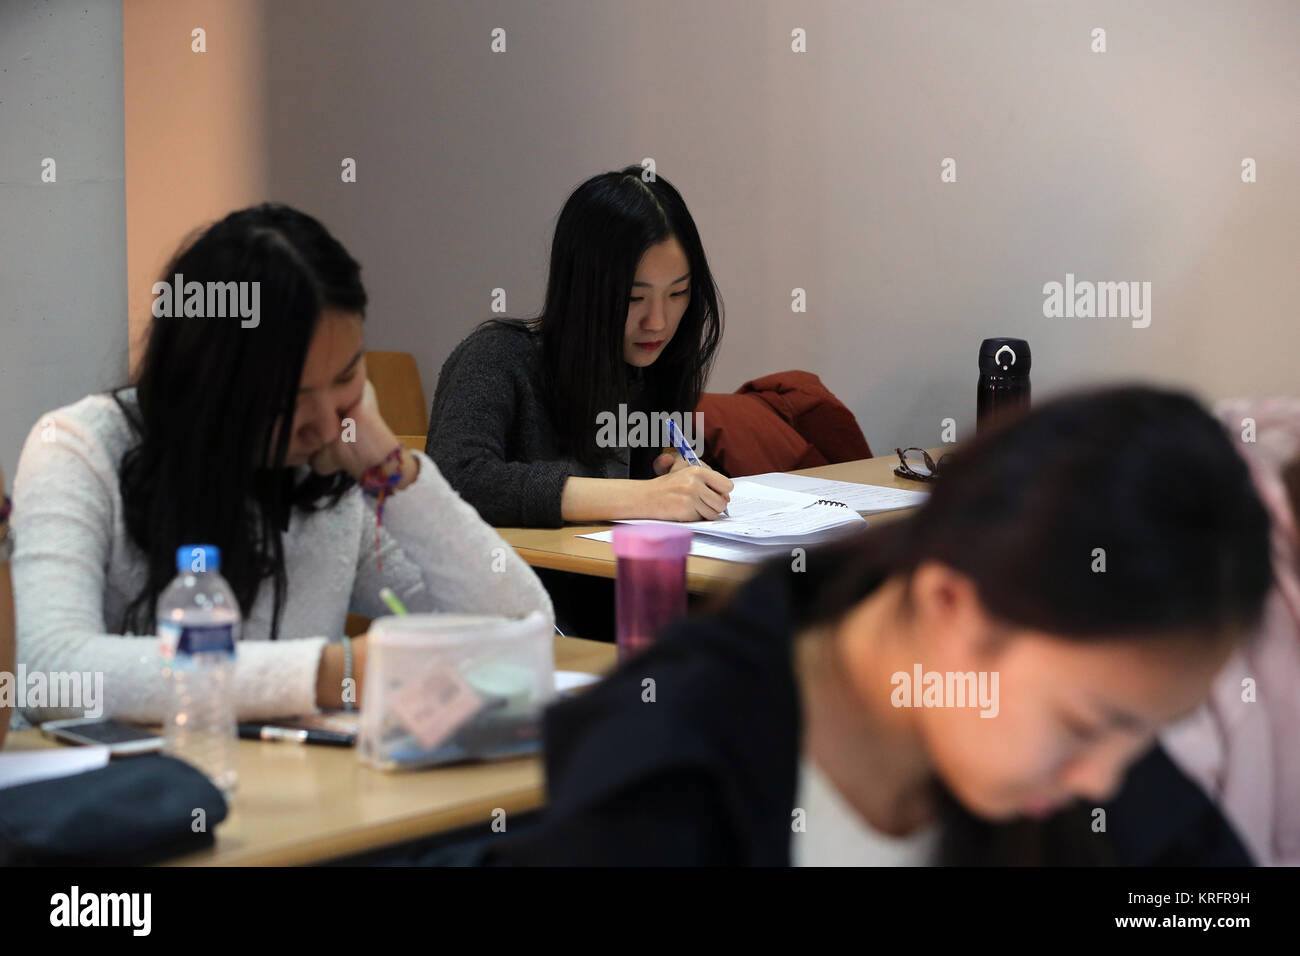 Athens. 15th Dec, 2017. Photo taken on Dec. 15, 2017 shows Chinese students attending a class at the Modern Greek - Stock Image